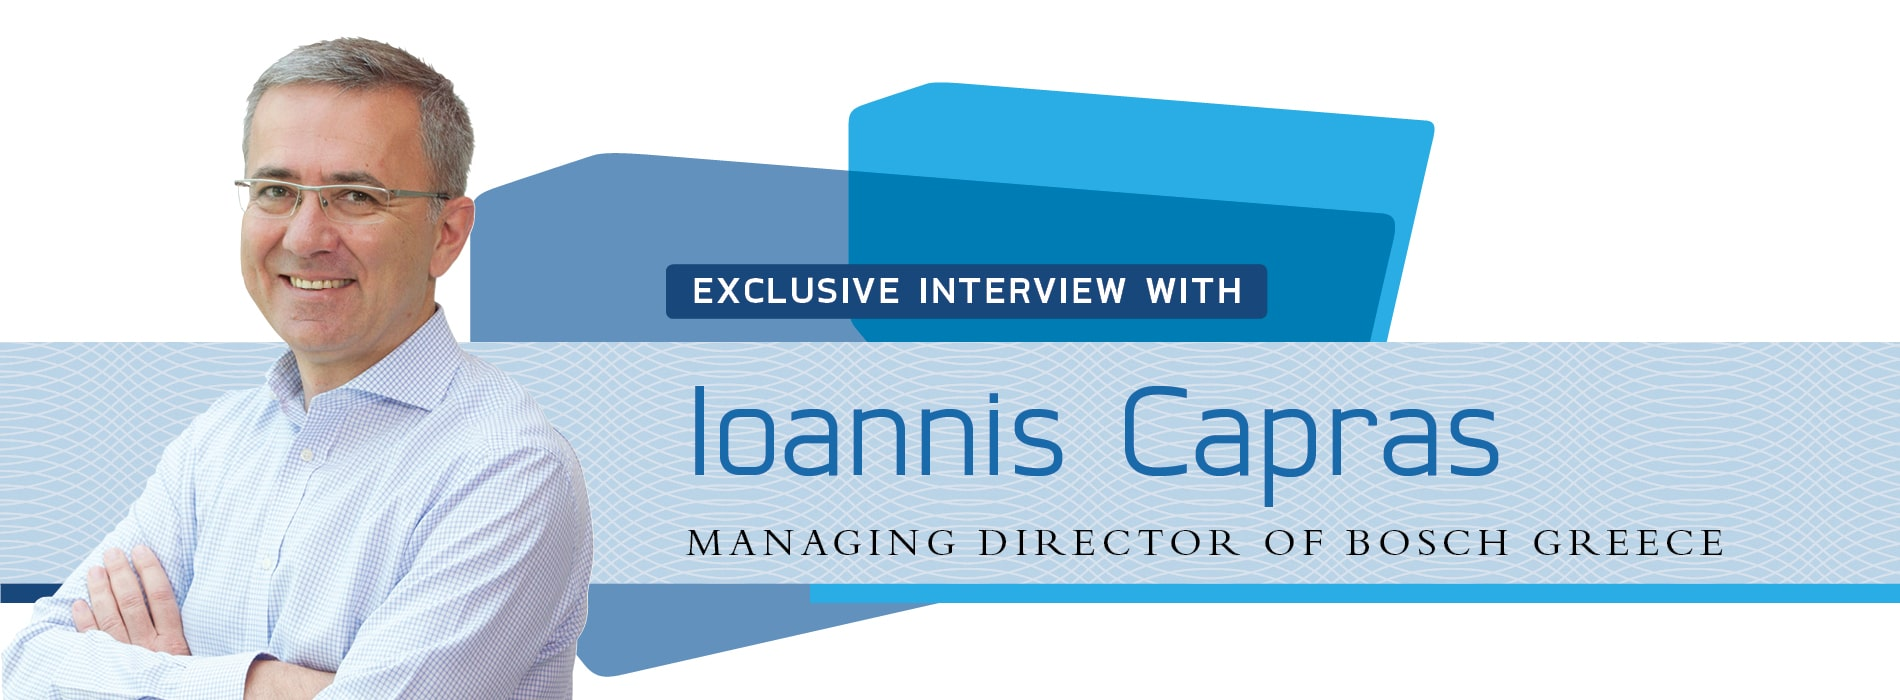 Interview with Ioannis Capras,Managing Director of Bosche Greece